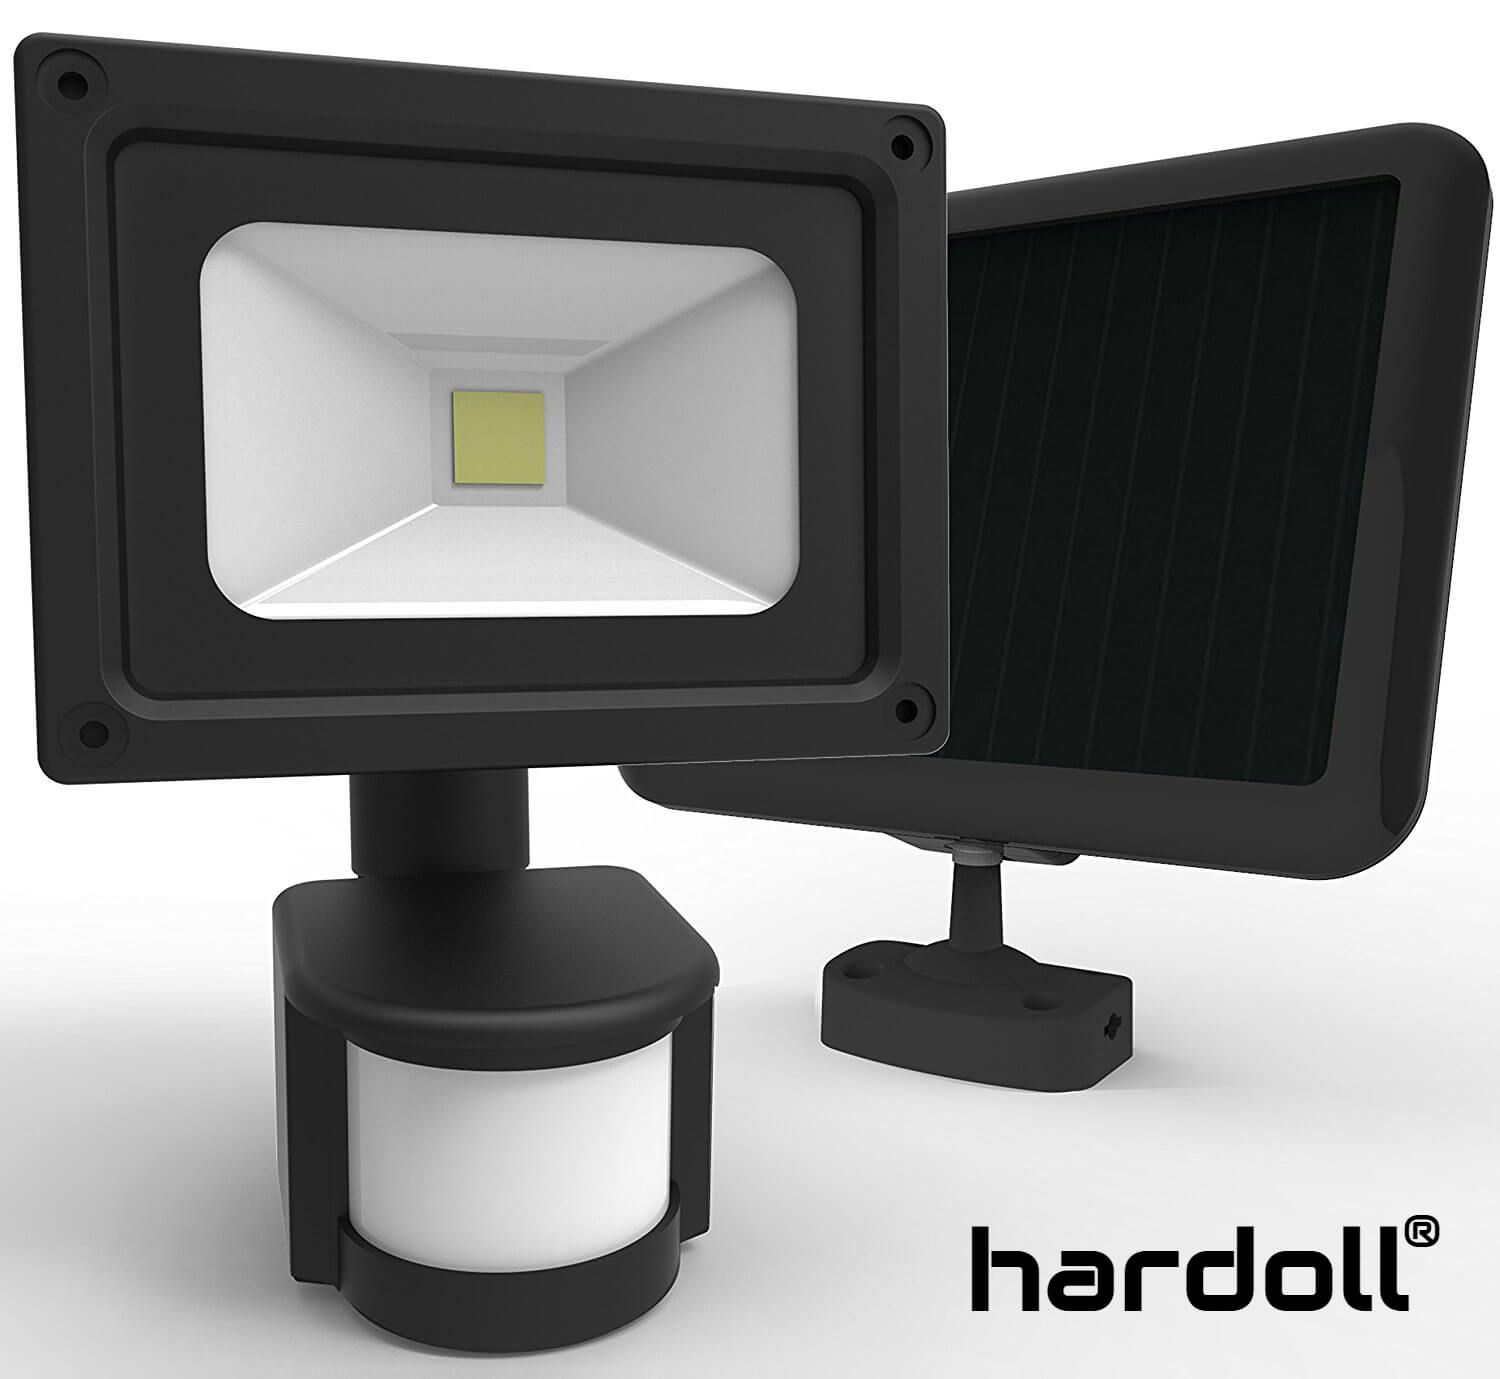 Hardoll 5w Cob Led Solar Lamp Outdoor Motion Sensor Security Waterproof Automatic Lights For Home Garden Wall Solar Lamp Solar Lights Motion Sensor